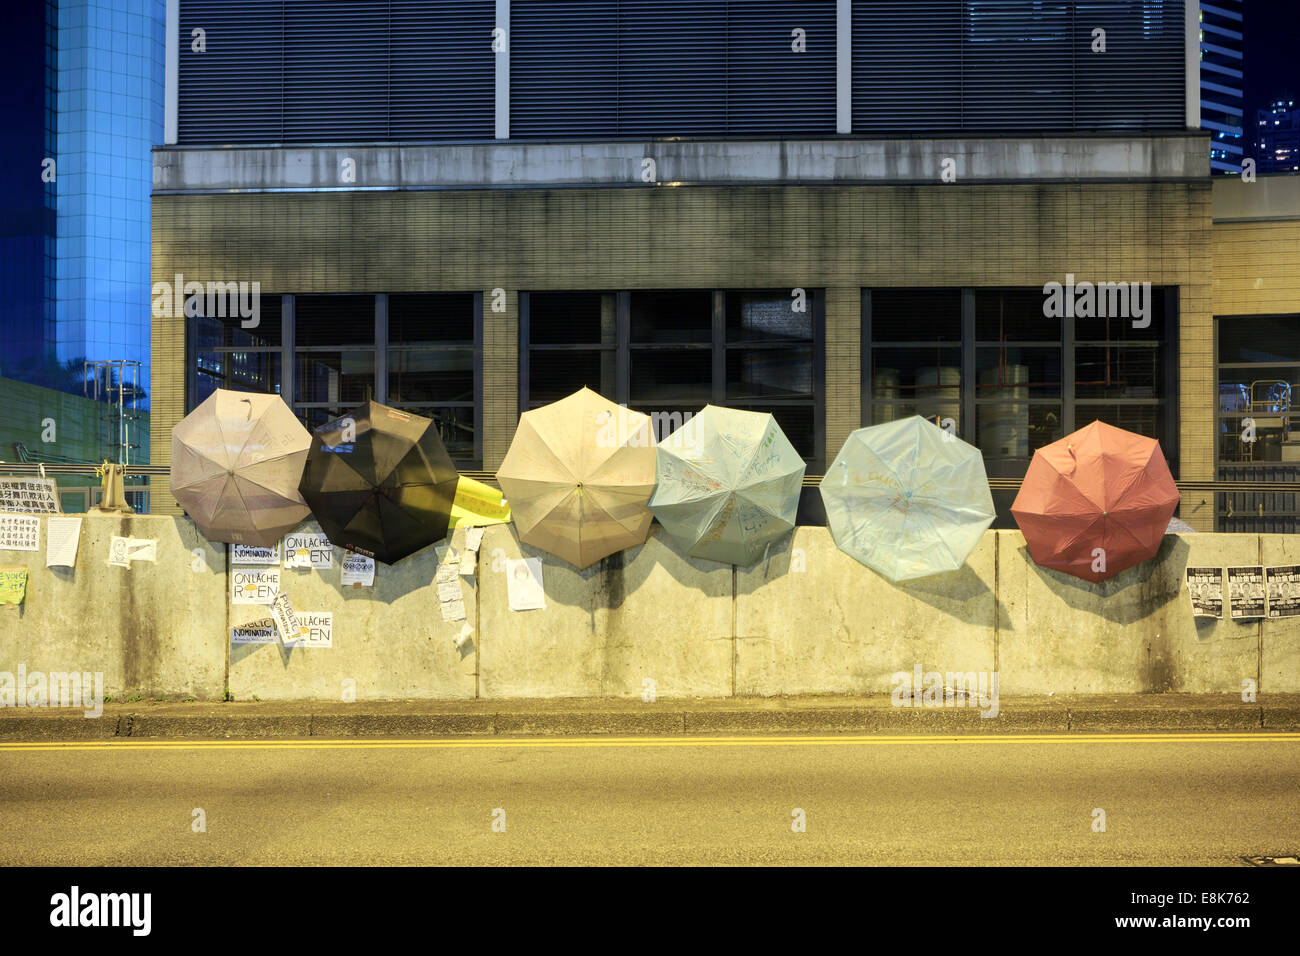 Umbrellas are showing everywhere under occupy Central campaign - Stock Image